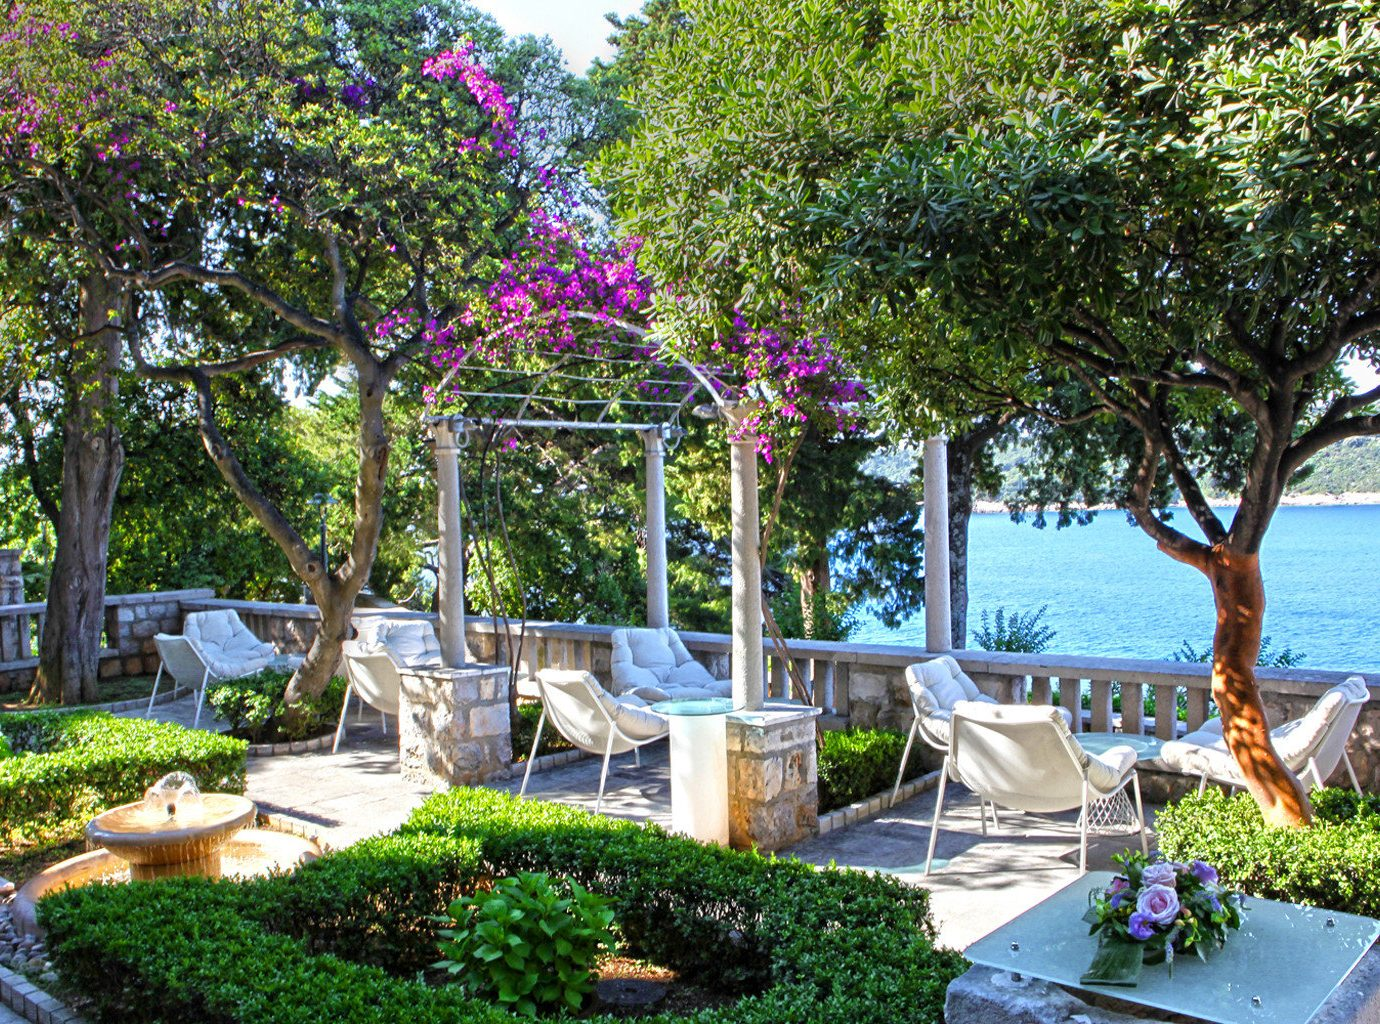 Beachfront Play Scenic views Trip Ideas Wellness tree outdoor property flower estate Resort Garden home real estate backyard yard plant Villa cottage shade